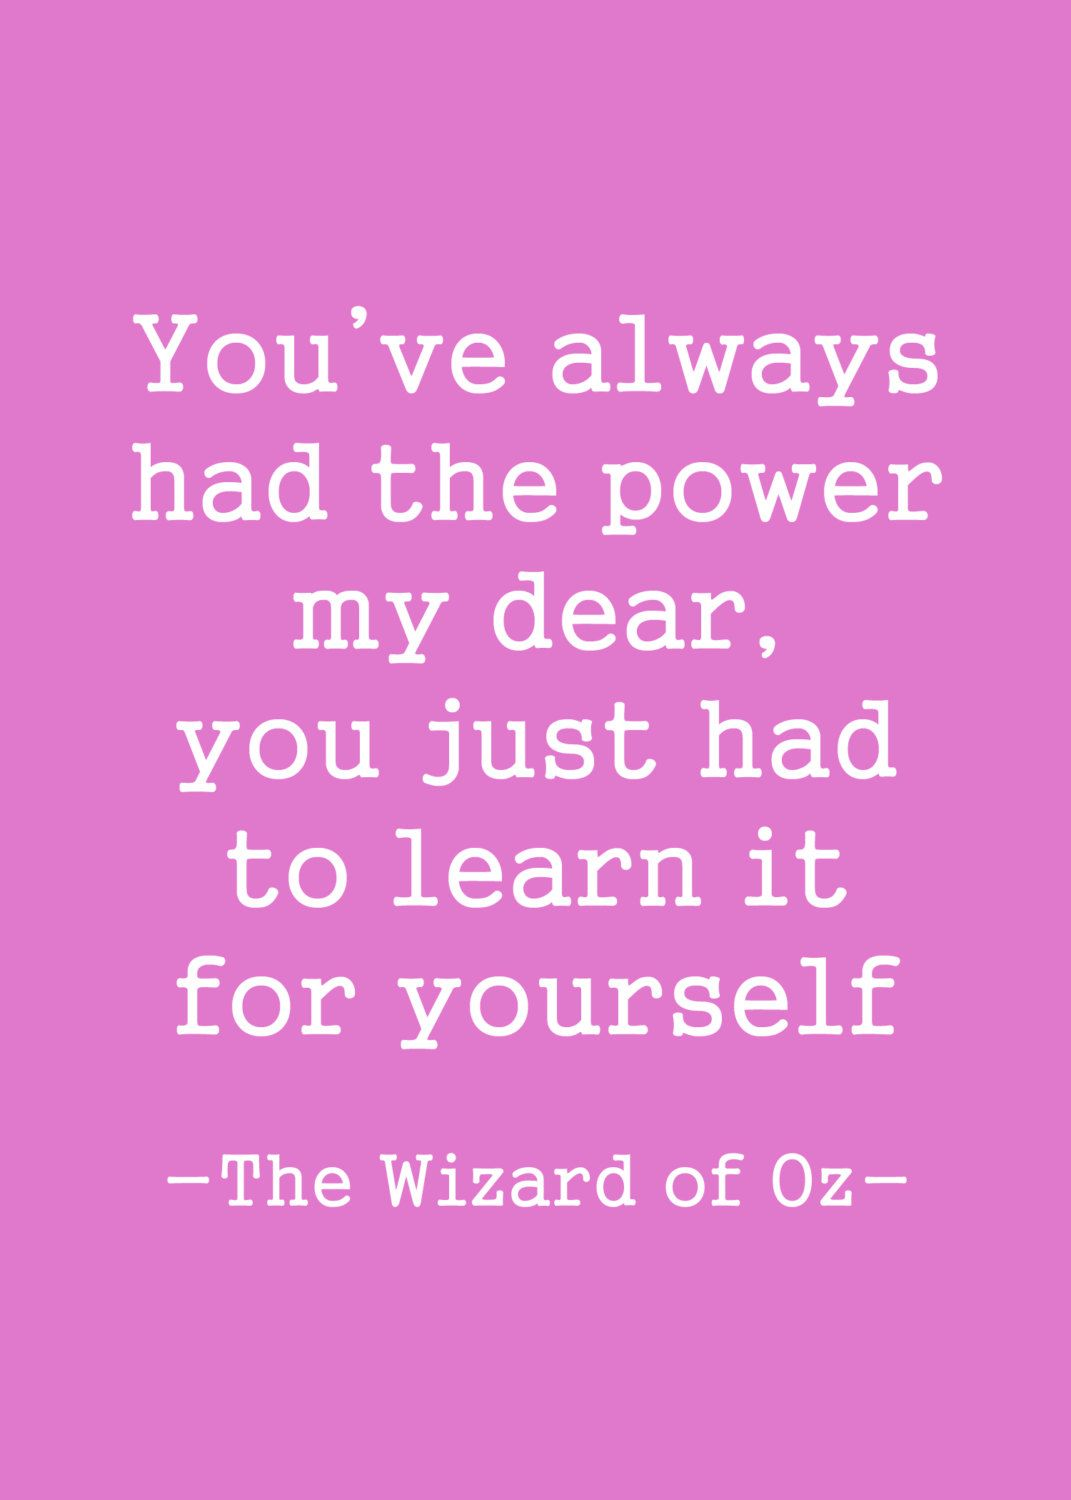 Wizard of oz quotes - Explore Wizard Of Oz Quotes Girls Camp And More